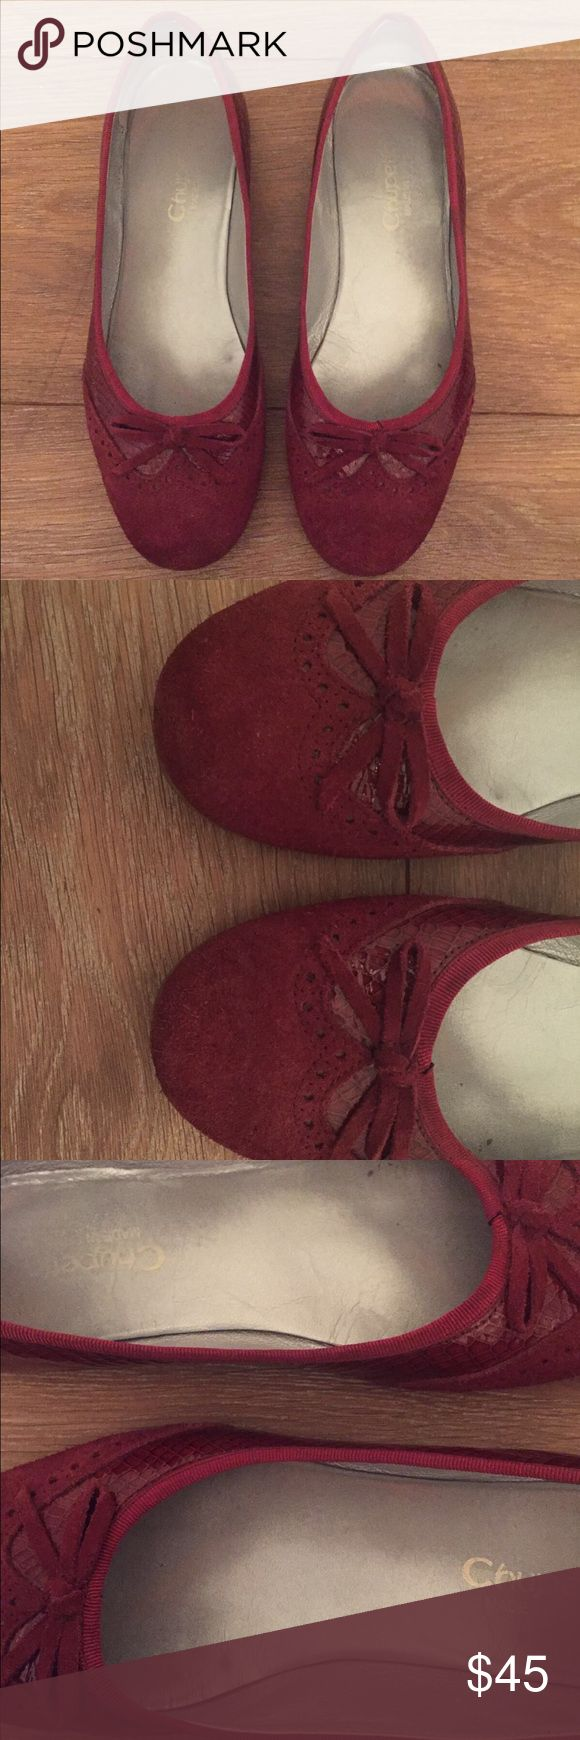 Gorgeous leather Italian shoes Very pretty Italian leather shoes. They are a great, deep shade of red. Looks great with everything! Chupetto Shoes Flats & Loafers